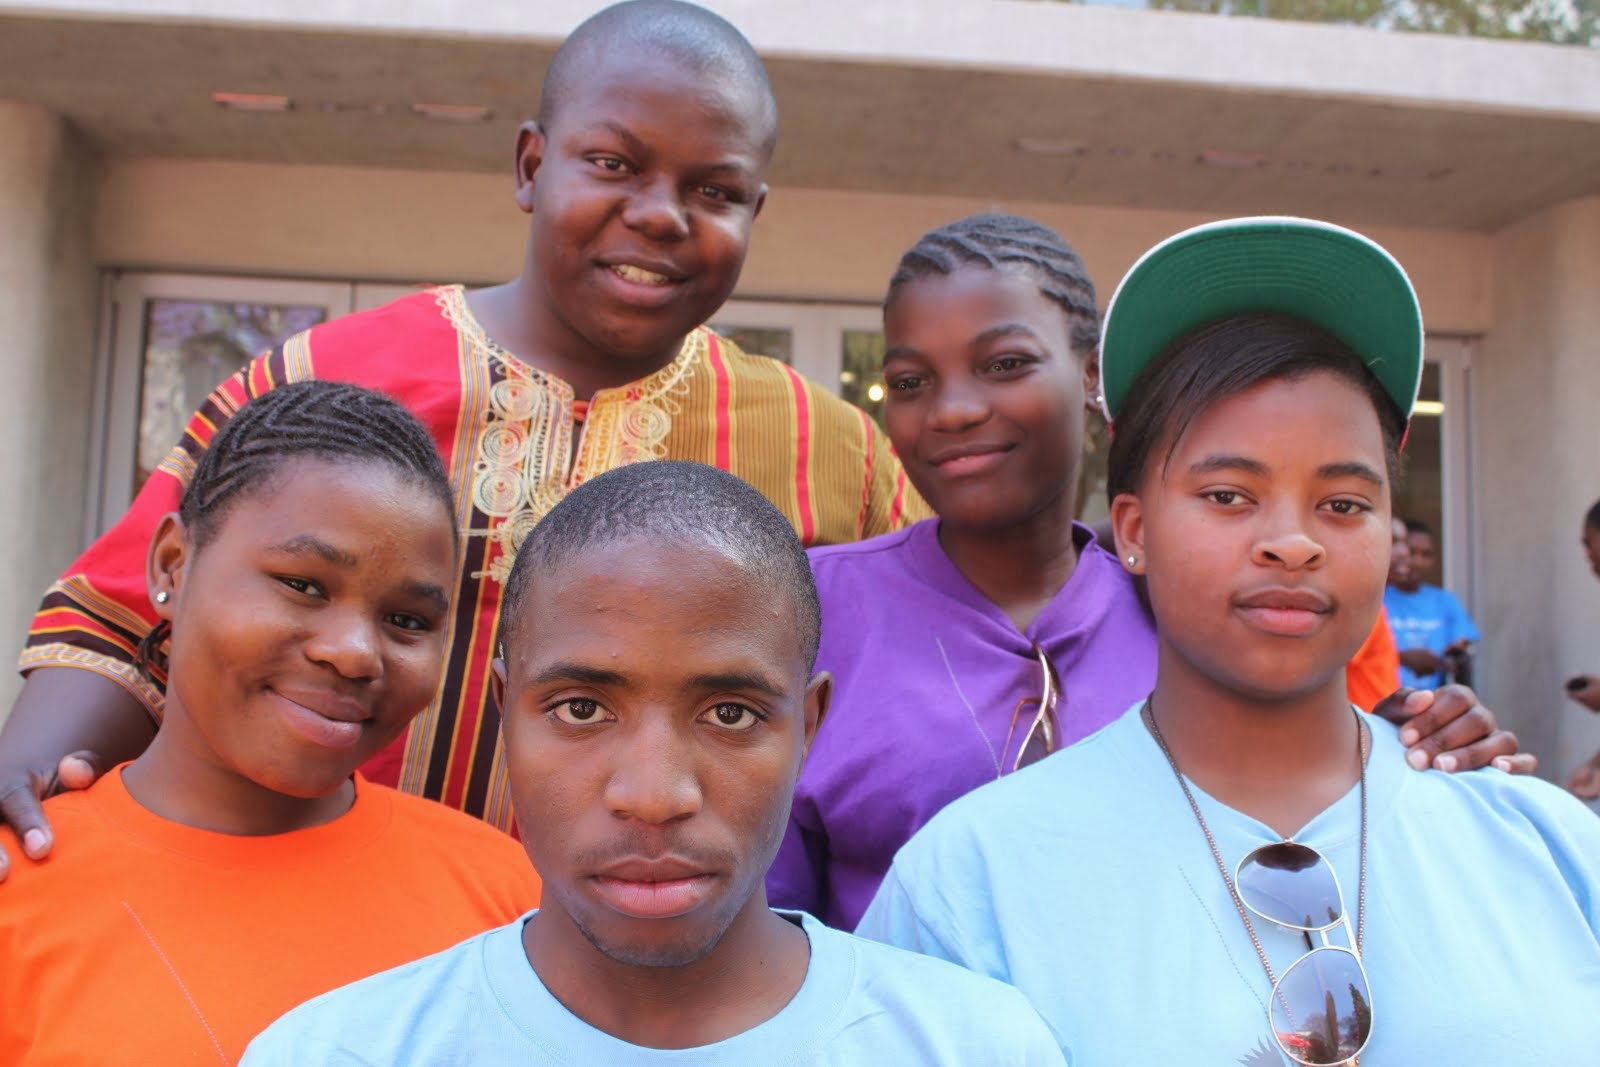 Thabang Mahlangu and his 4 mentees